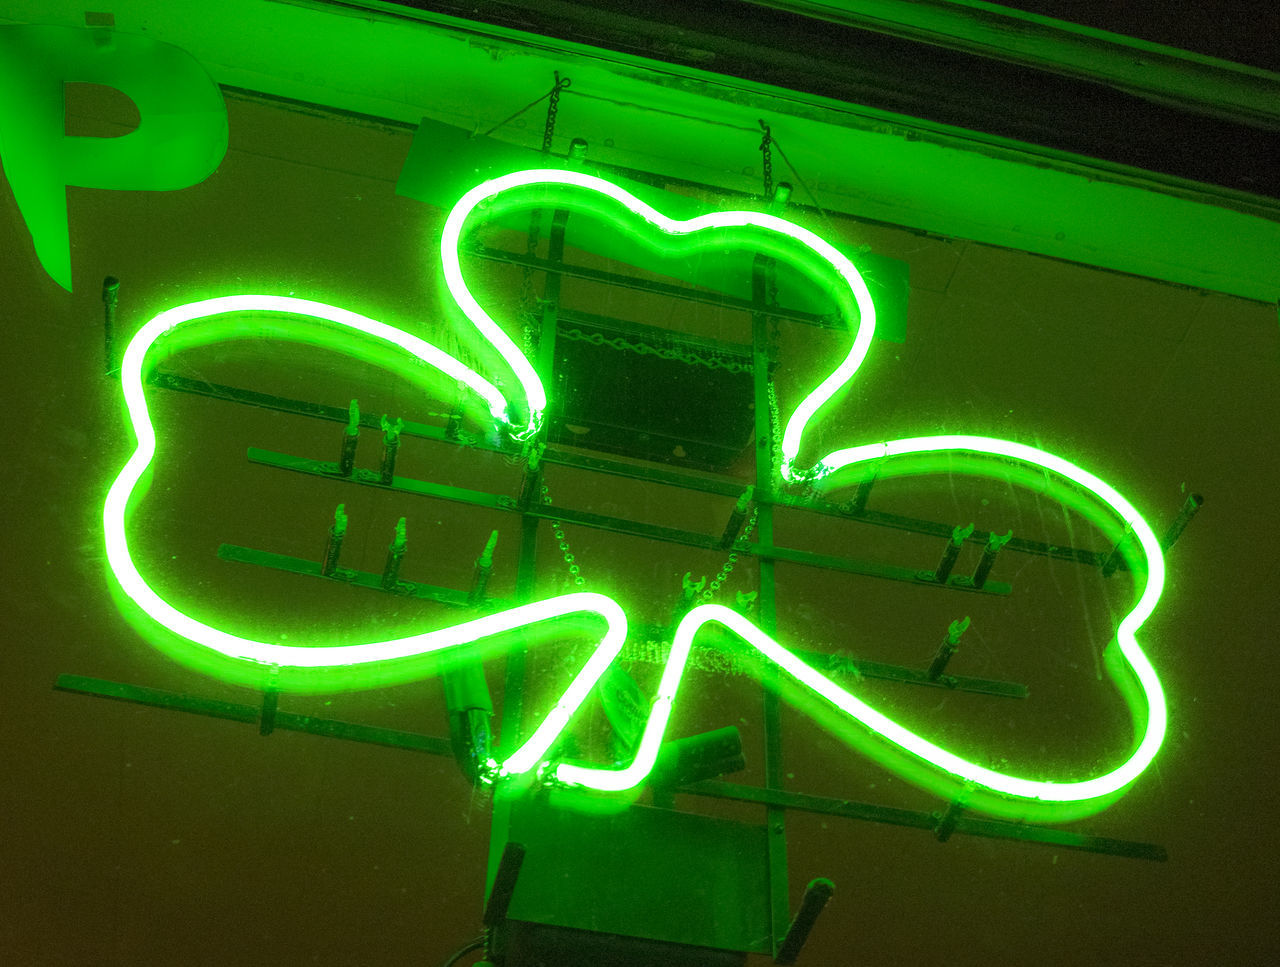 Get Lucky! Bright Green neon sign at the Shamrock Bar in Garbriels, Upstate New York inside the Adironadacks Bar Signs Bars And Pub Bright Colors Close Up Close-up Design Detail Glowing Good Luck Charm Green Clover Irish Neon Neon Color Neon Lights Neon Sign Neonlights No People Outdoors Restaurants Shamrock